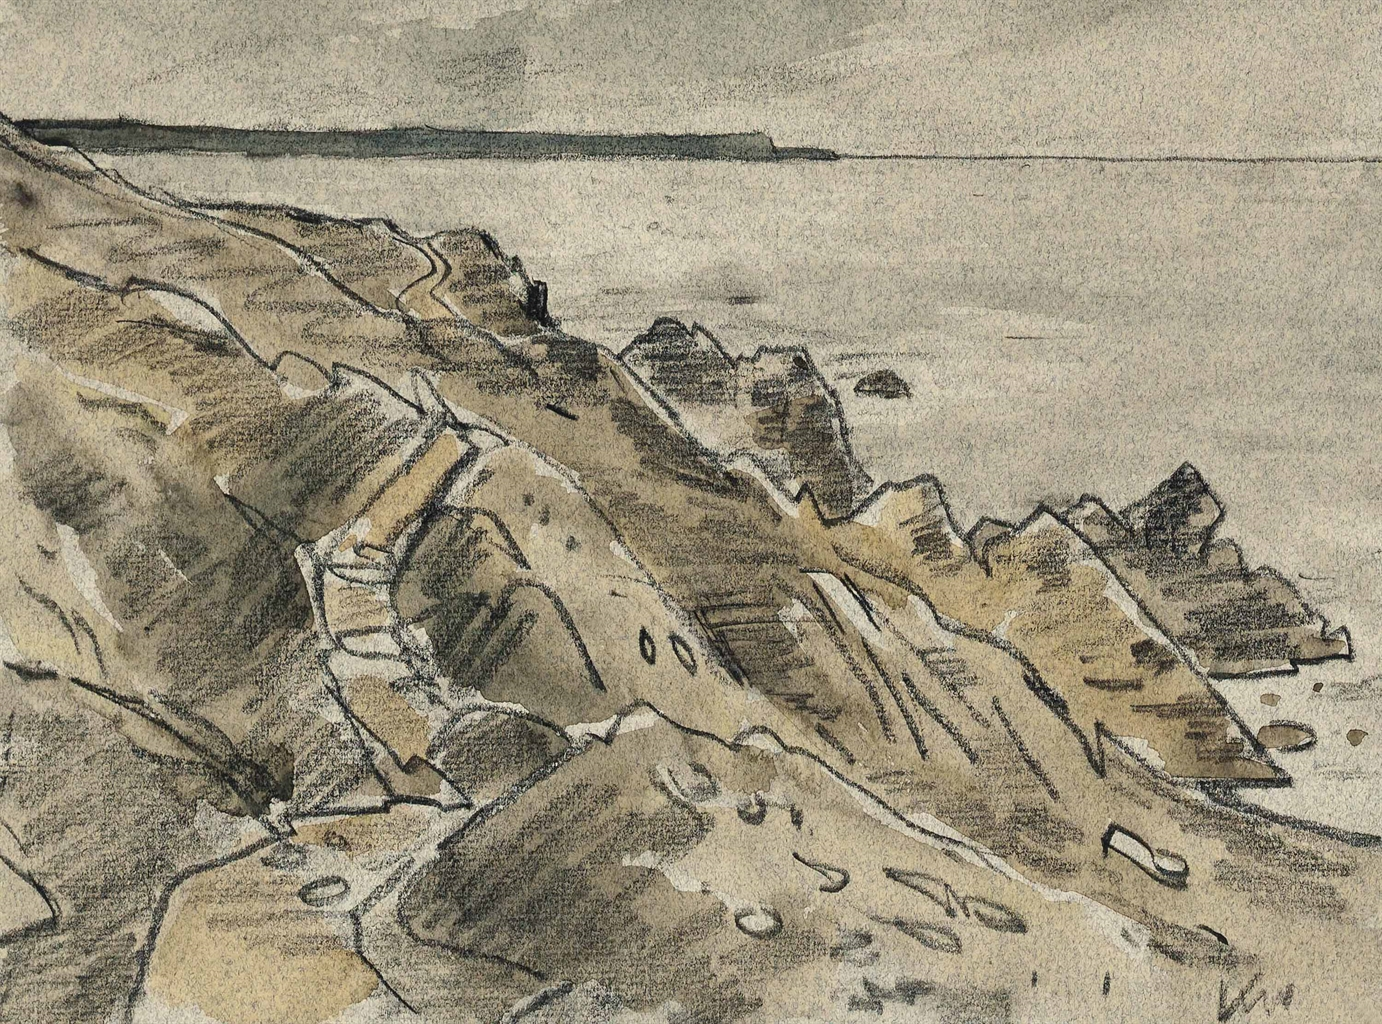 Kyffin Williams-Coastal path Pembrokeshire-